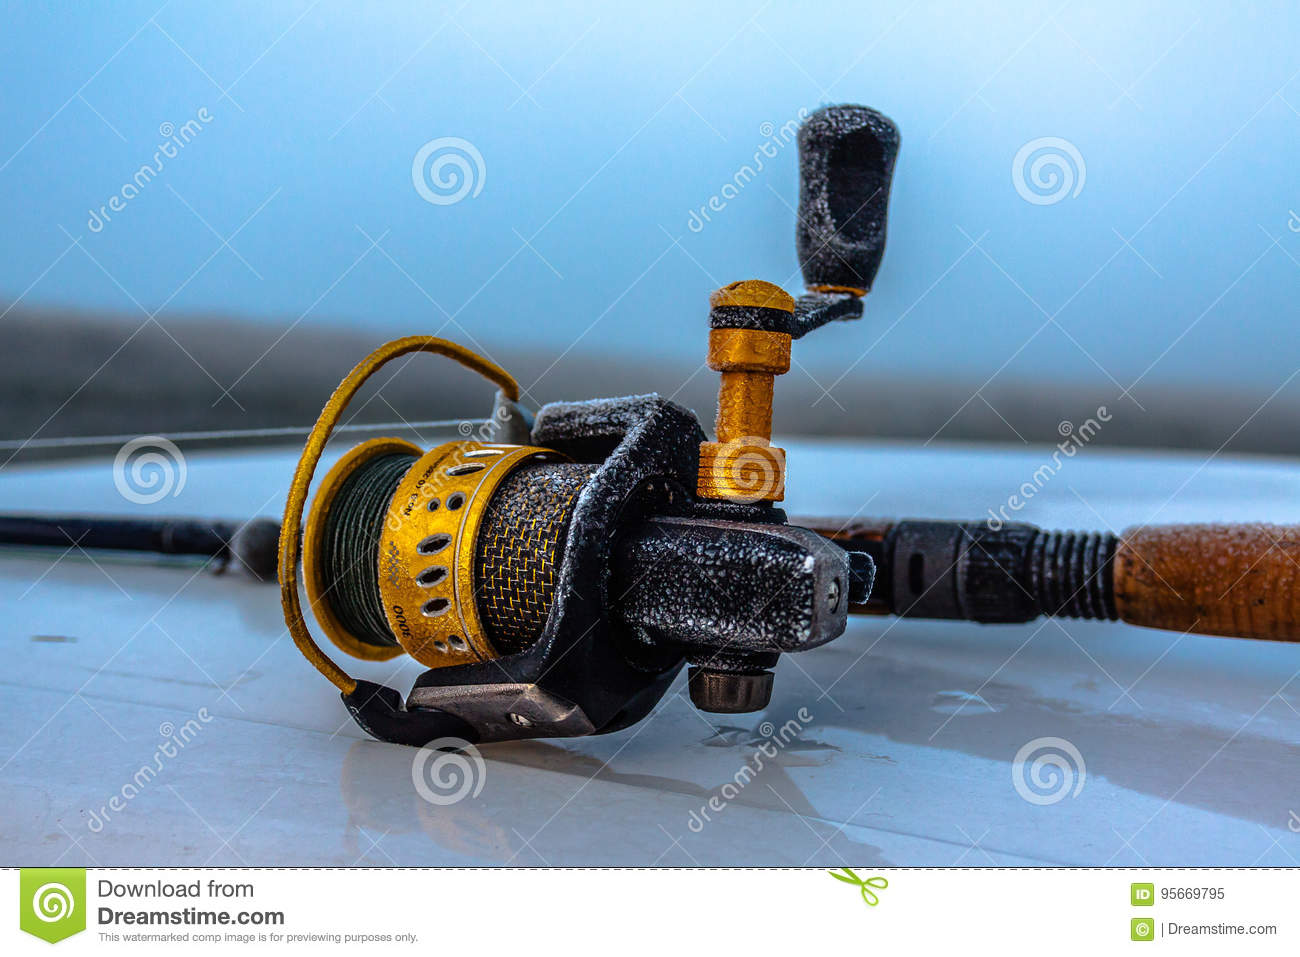 Spinning reel stock image  Image of bait, frost, reels